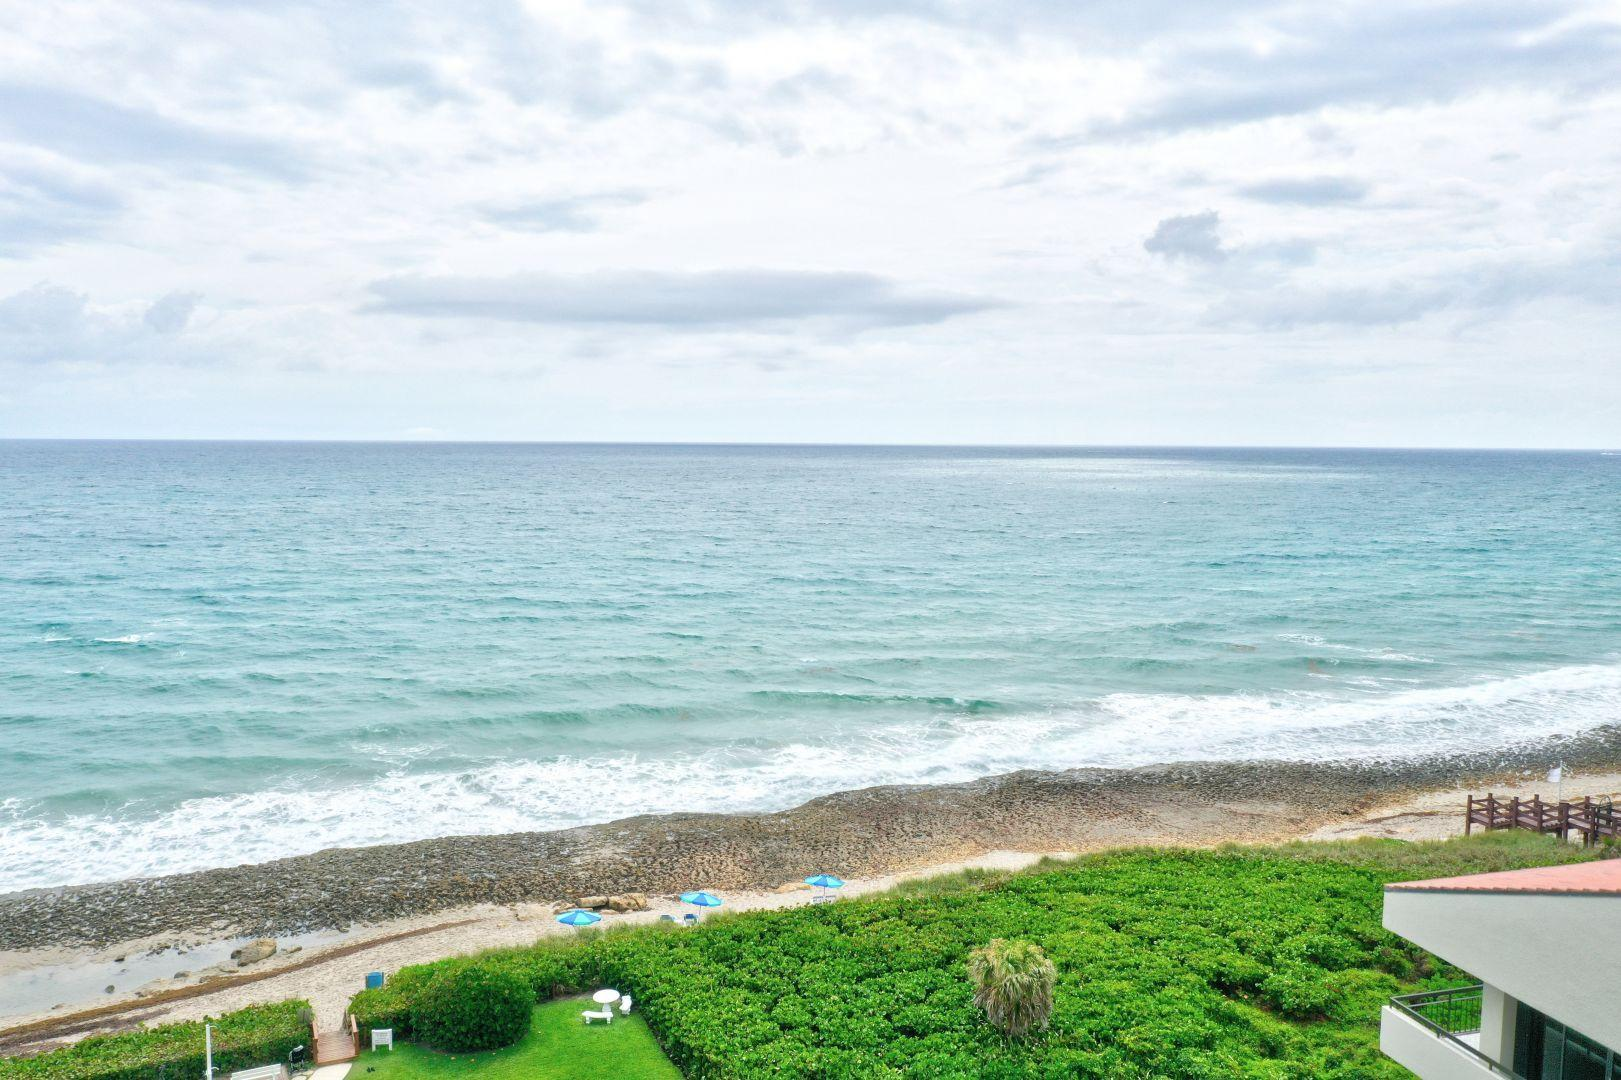 New Home for sale at 4200 Ocean Drive in Singer Island